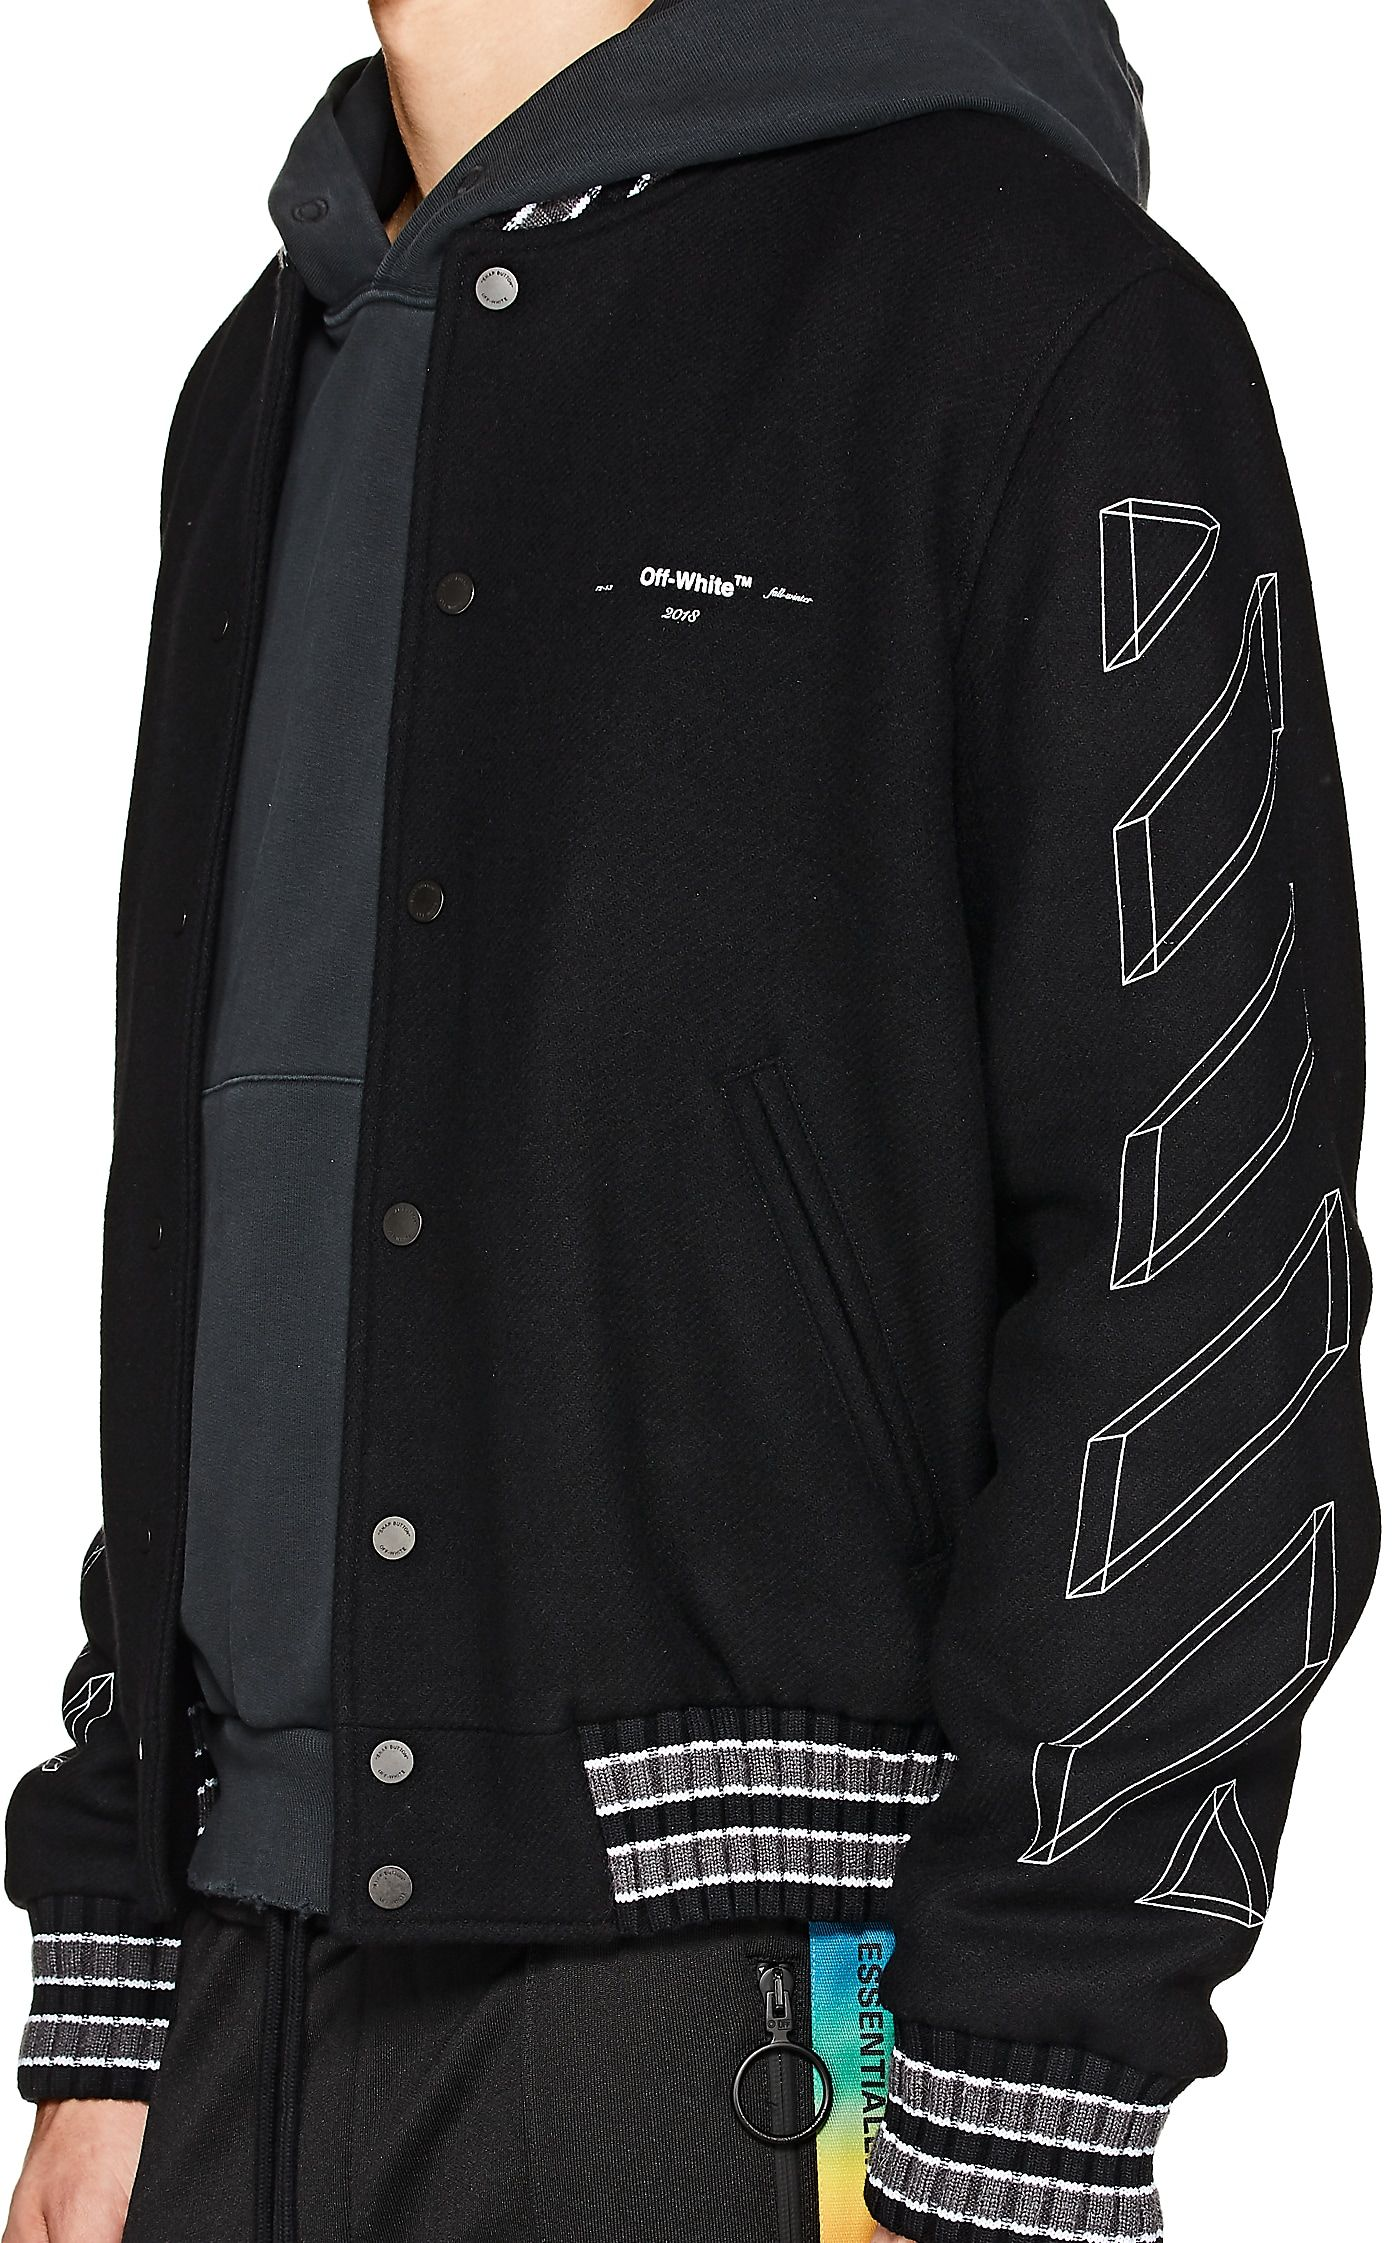 Off White C O Virgil Abloh 3d Striped Wool Blend Varsity Jacket Barneys New York Mens Outdoor Jackets Hoodie Outfit Men Off White Jacket [ 2243 x 1400 Pixel ]